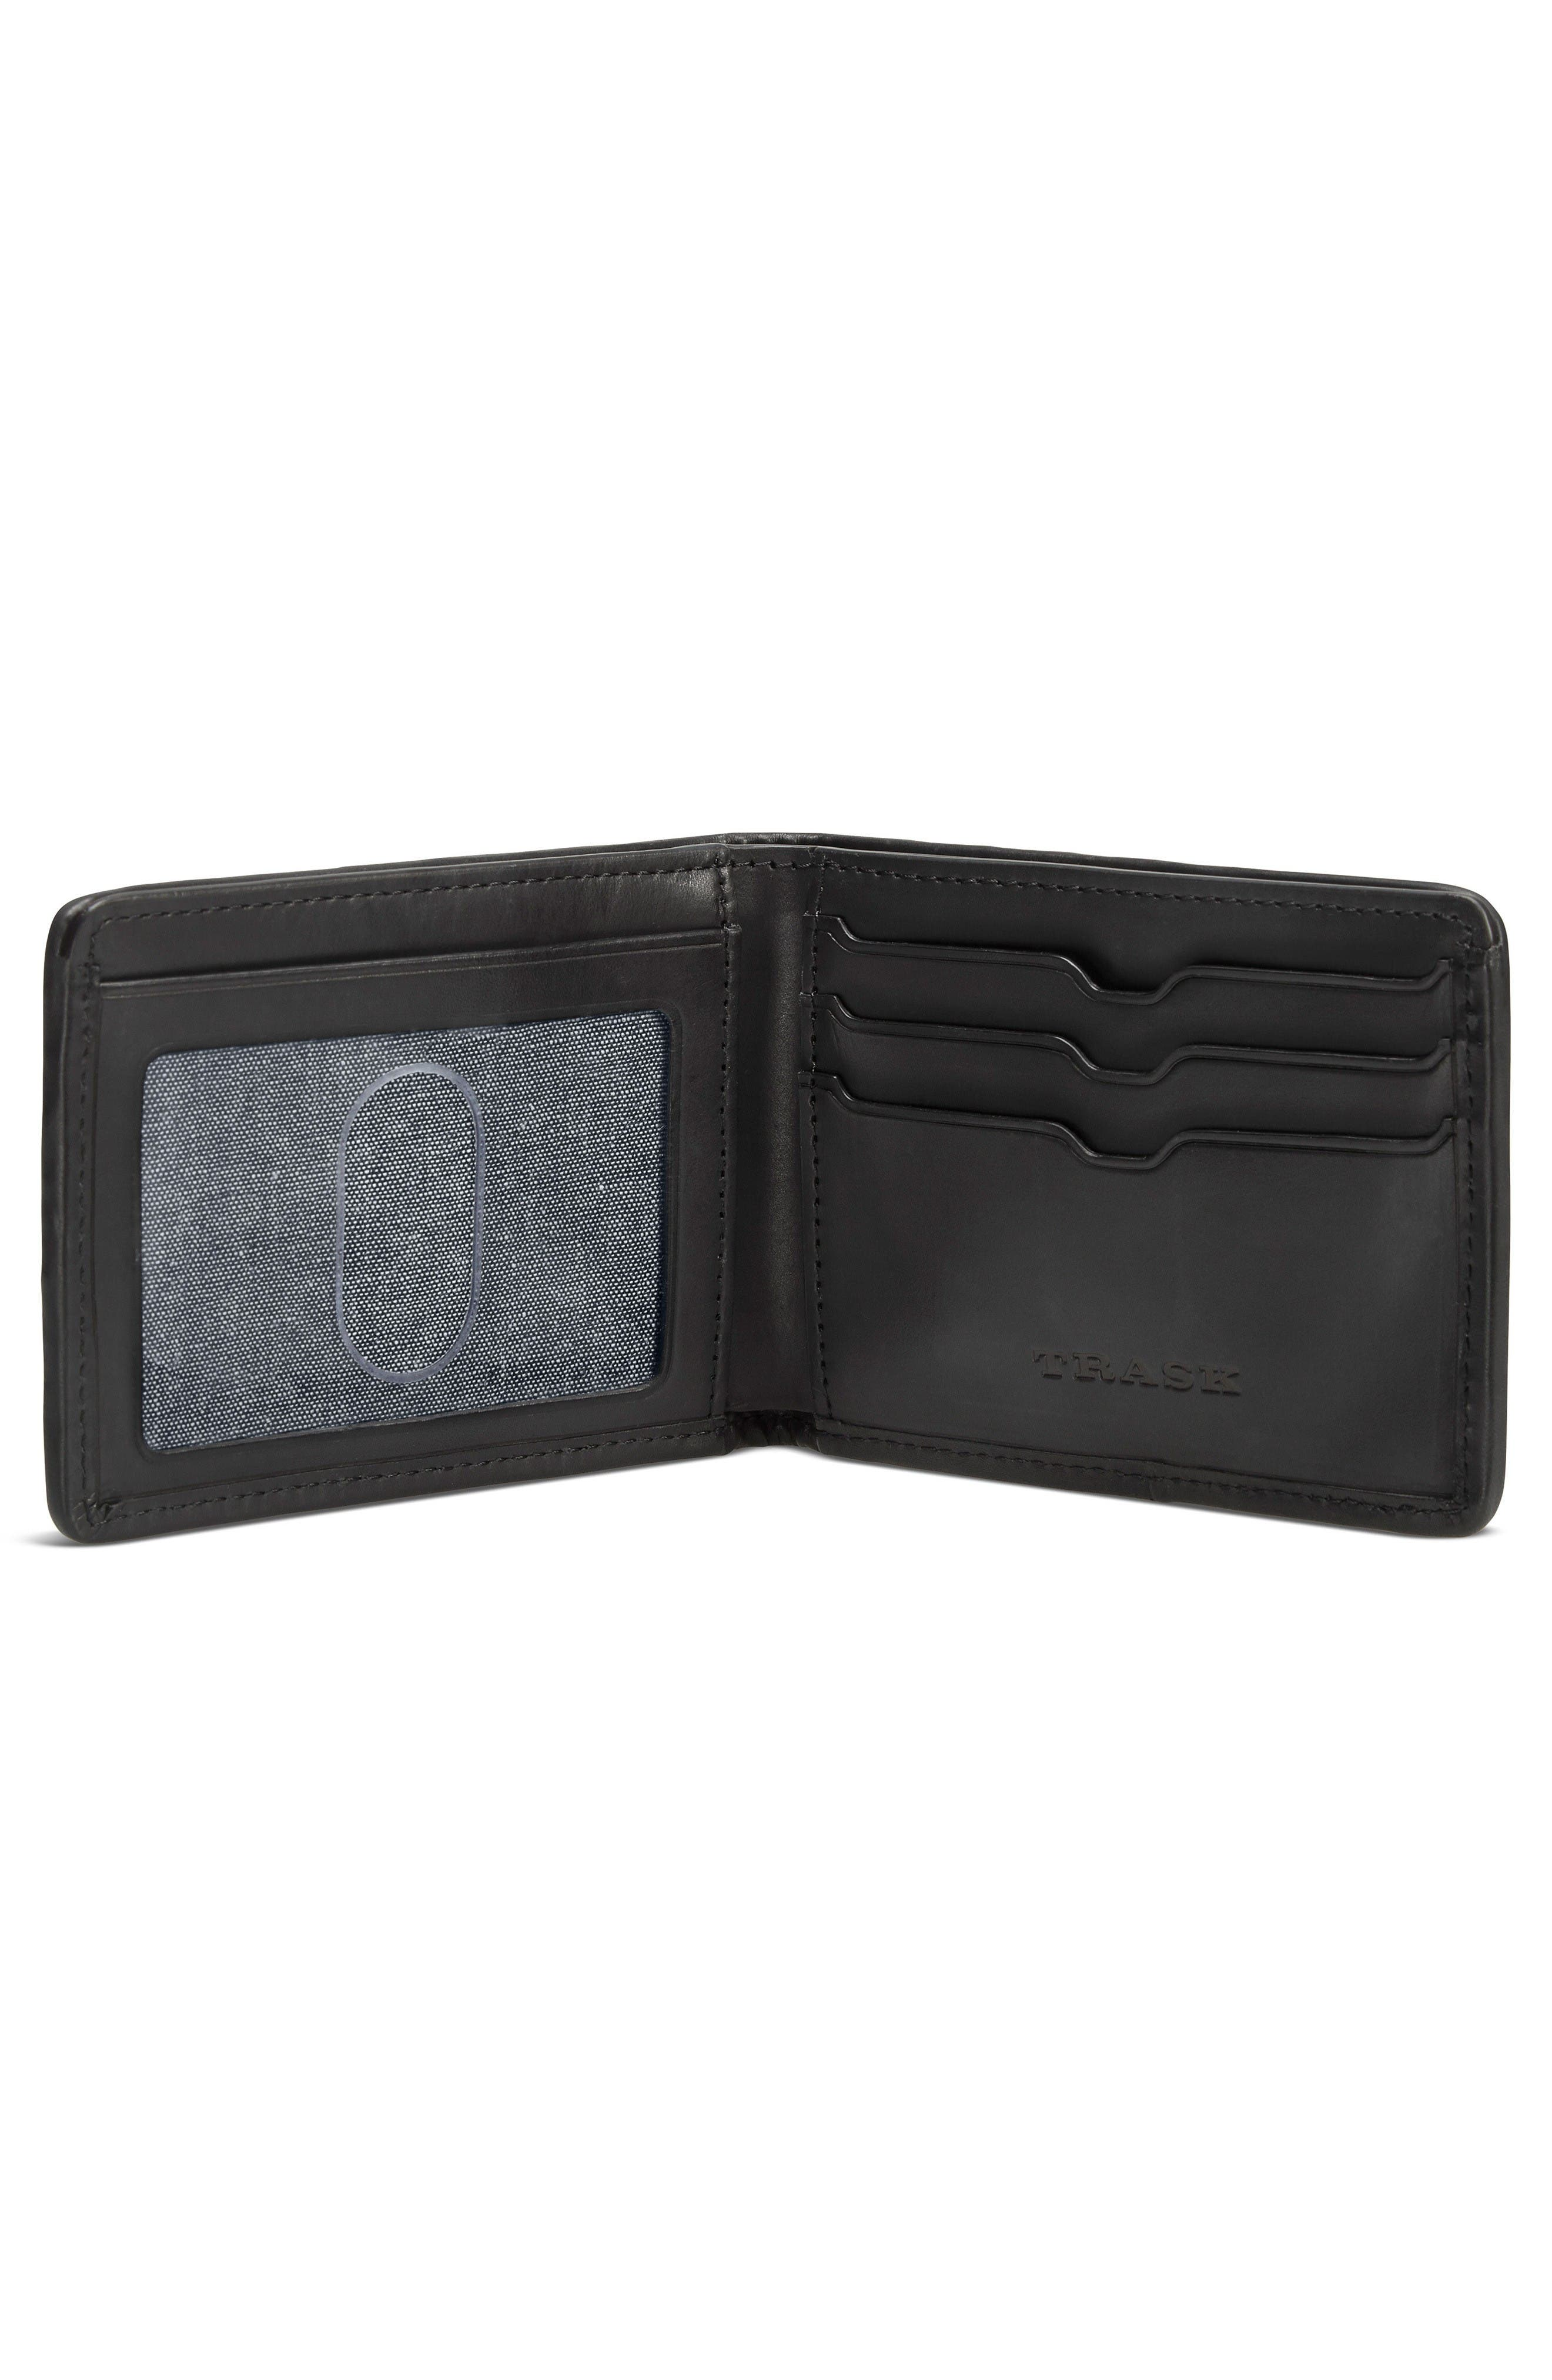 Woven Leather Wallet,                             Alternate thumbnail 2, color,                             Black